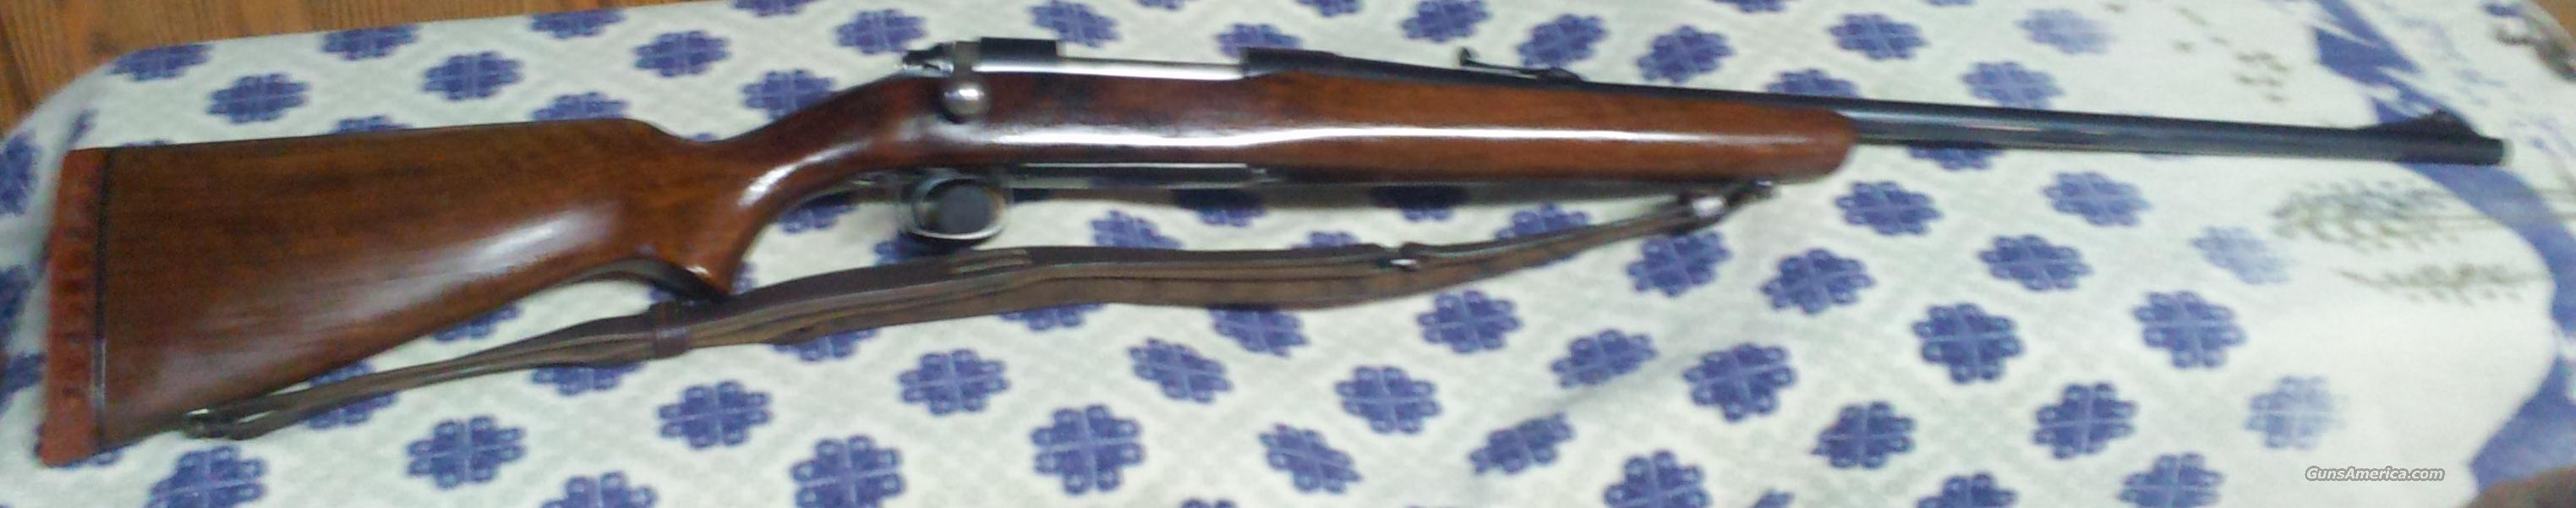 Remington 30-06 Model 721  Guns > Rifles > Remington Rifles - Modern > Model 700 > Sporting